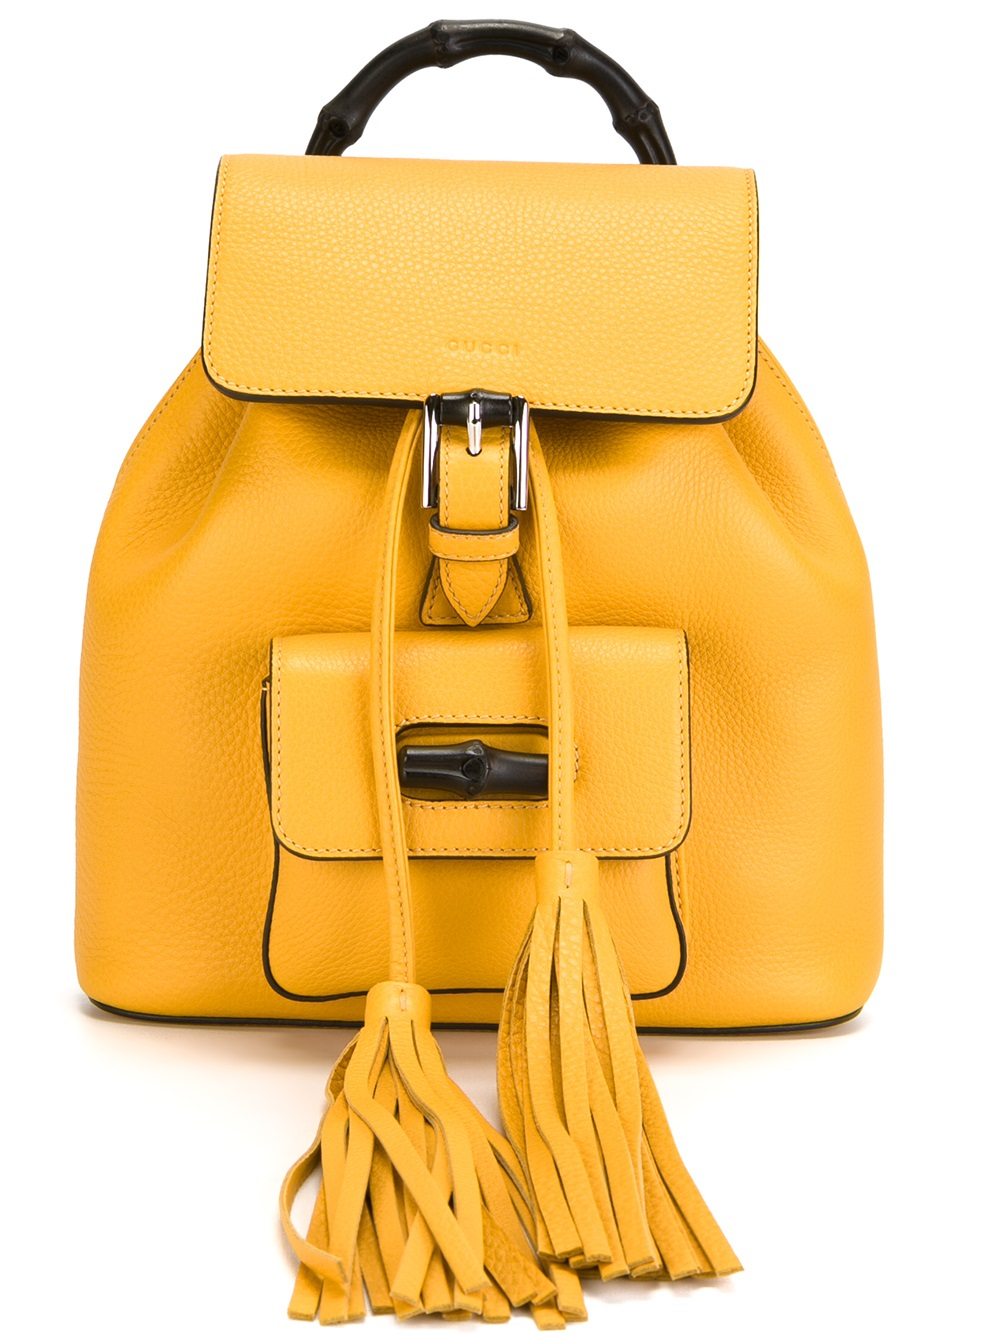 71e0bcade4c Lyst - Gucci Bamboo Backpack in Yellow